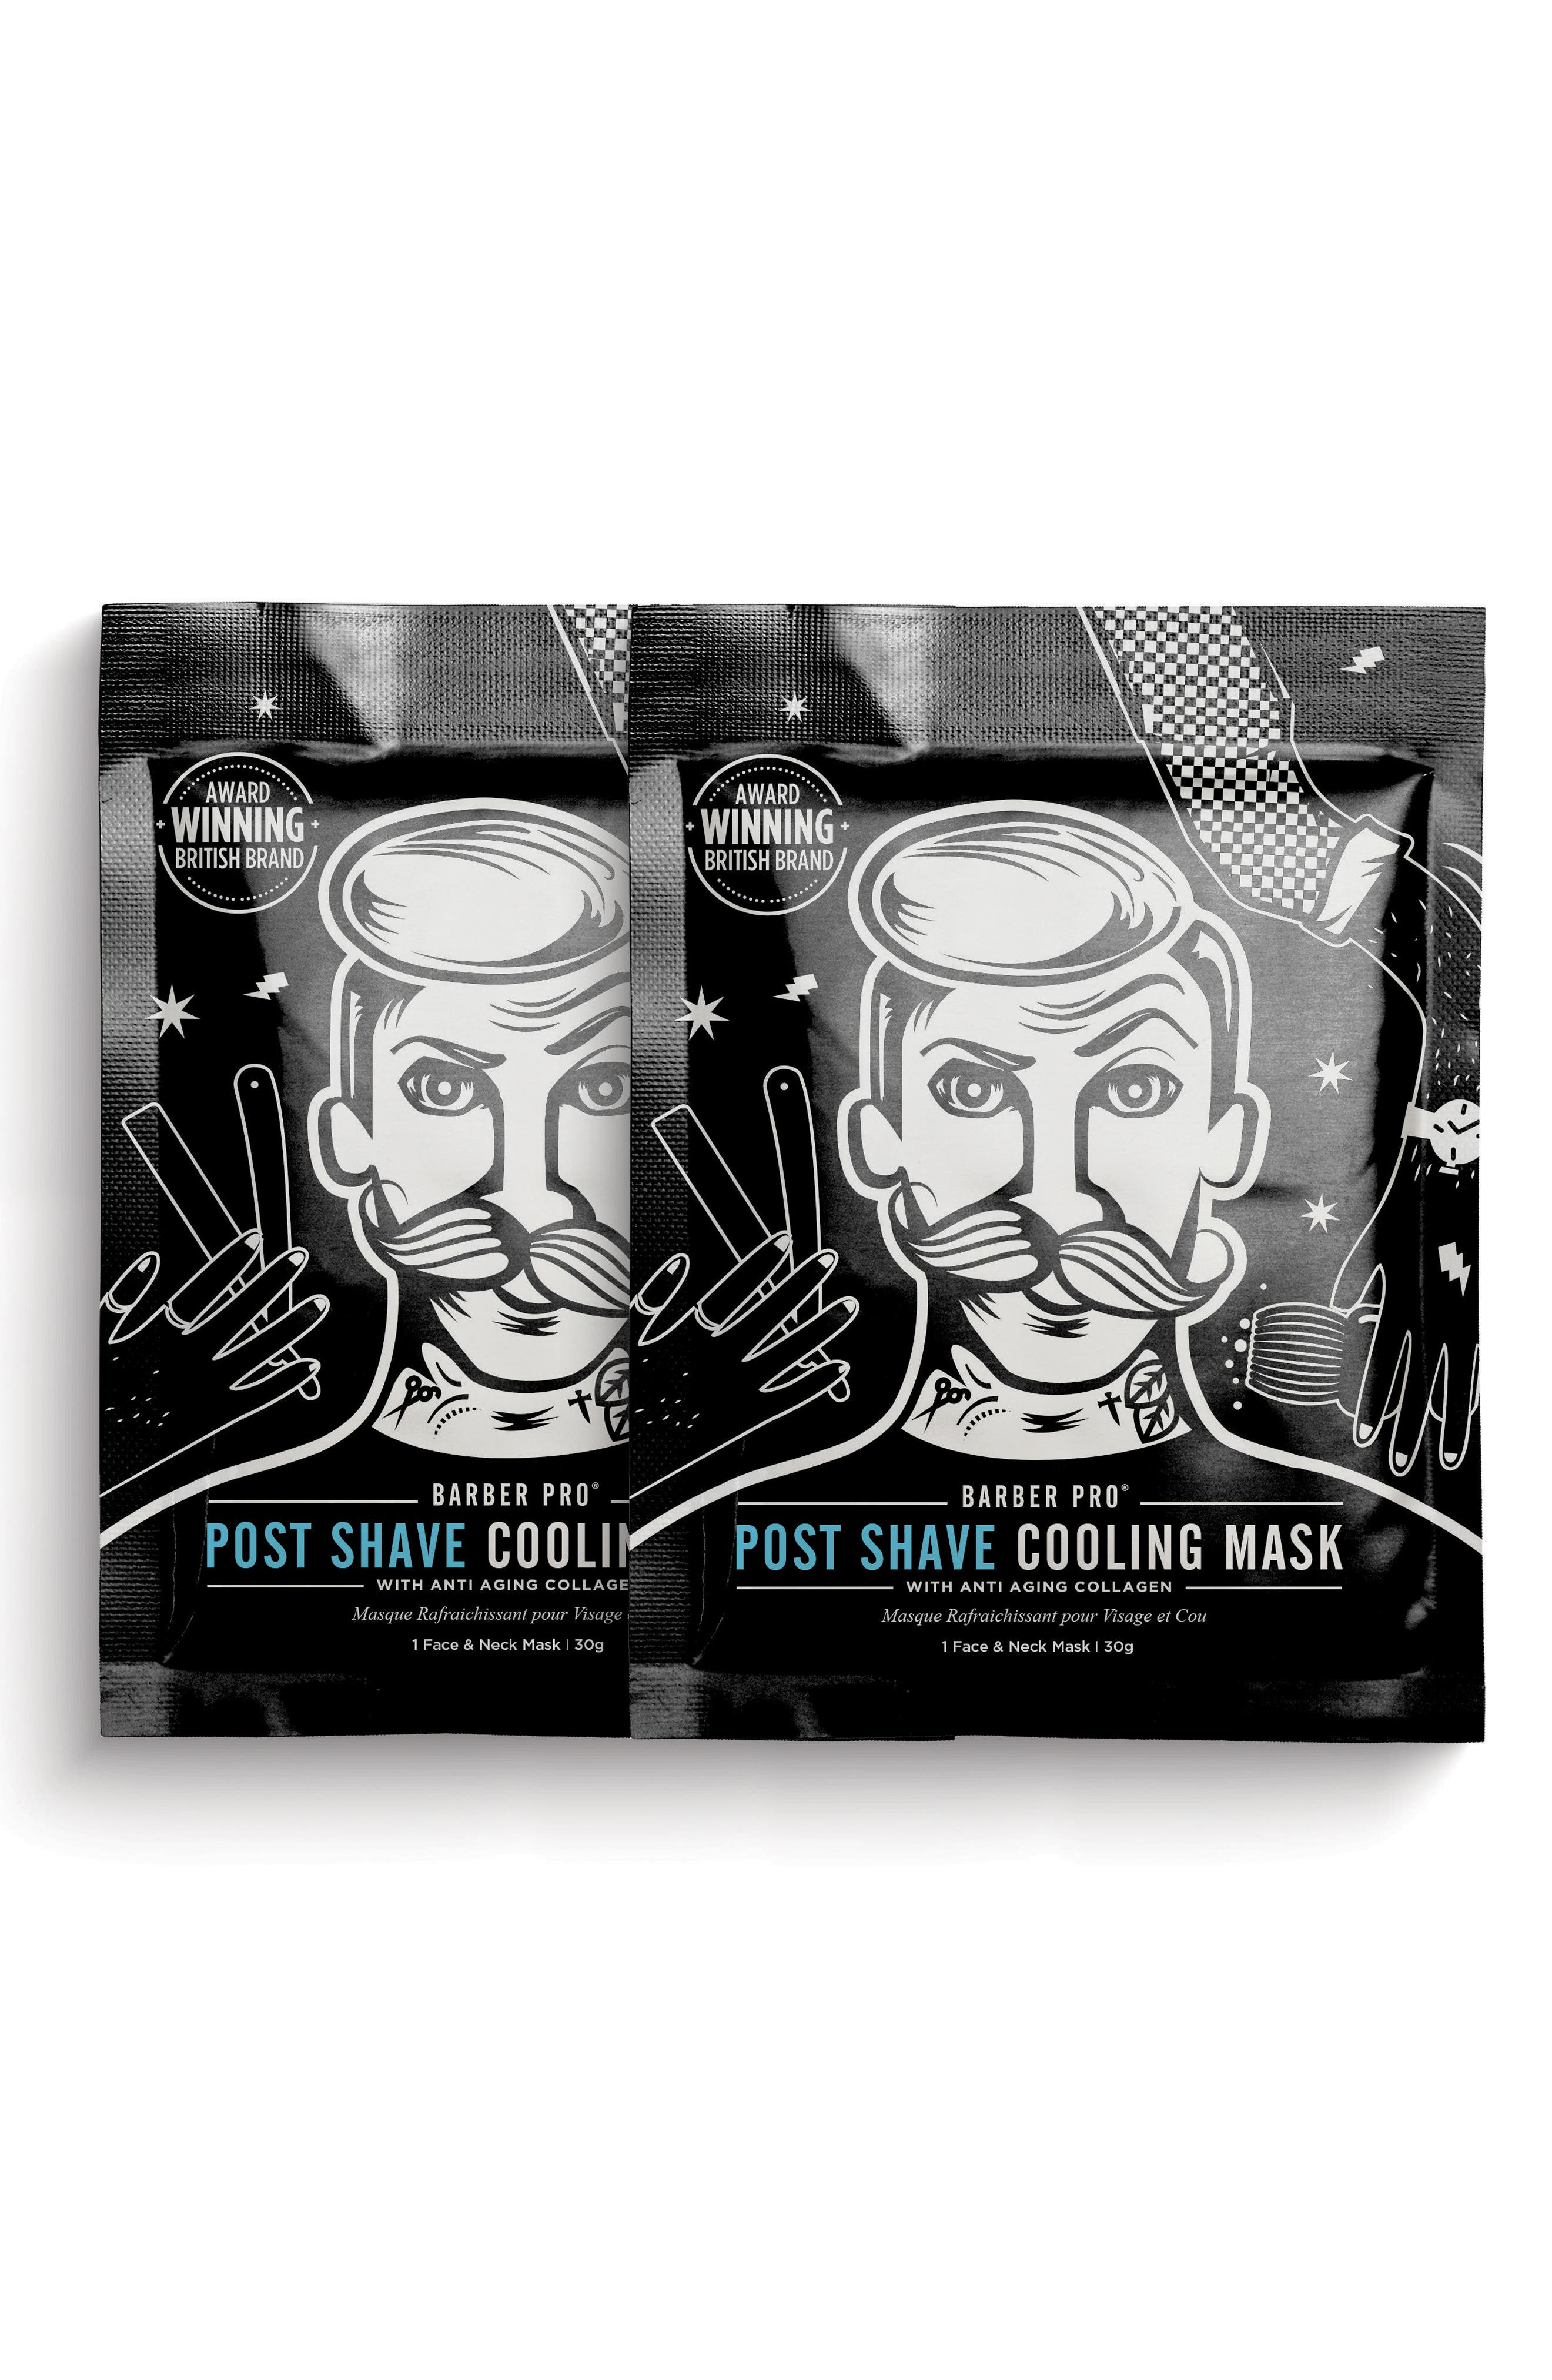 Alternate Image 1 Selected - Barber Pro Post Shave Cooling Mask Duo (Nordstrom Exclusive)